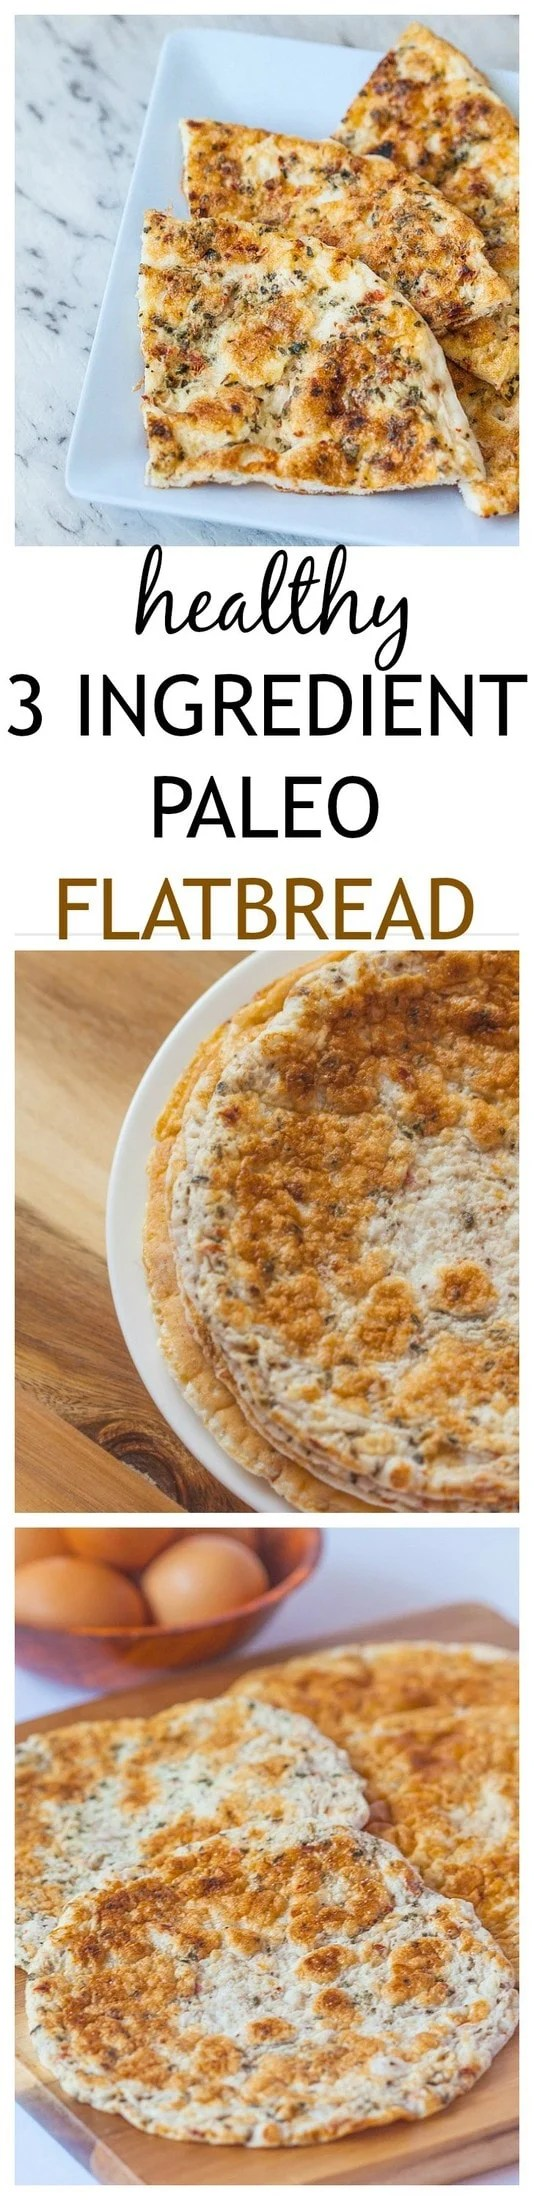 3 Ingredient Paleo Flatbread- Just three ingredients are needed to make this paleo 'flatbread'- Perfect for those watching their carb intake yet craving something 'bread' like or a lighter vehicle to hold those wrap or sandwich fillings! @thebigmansworld - thebigmansworld.com